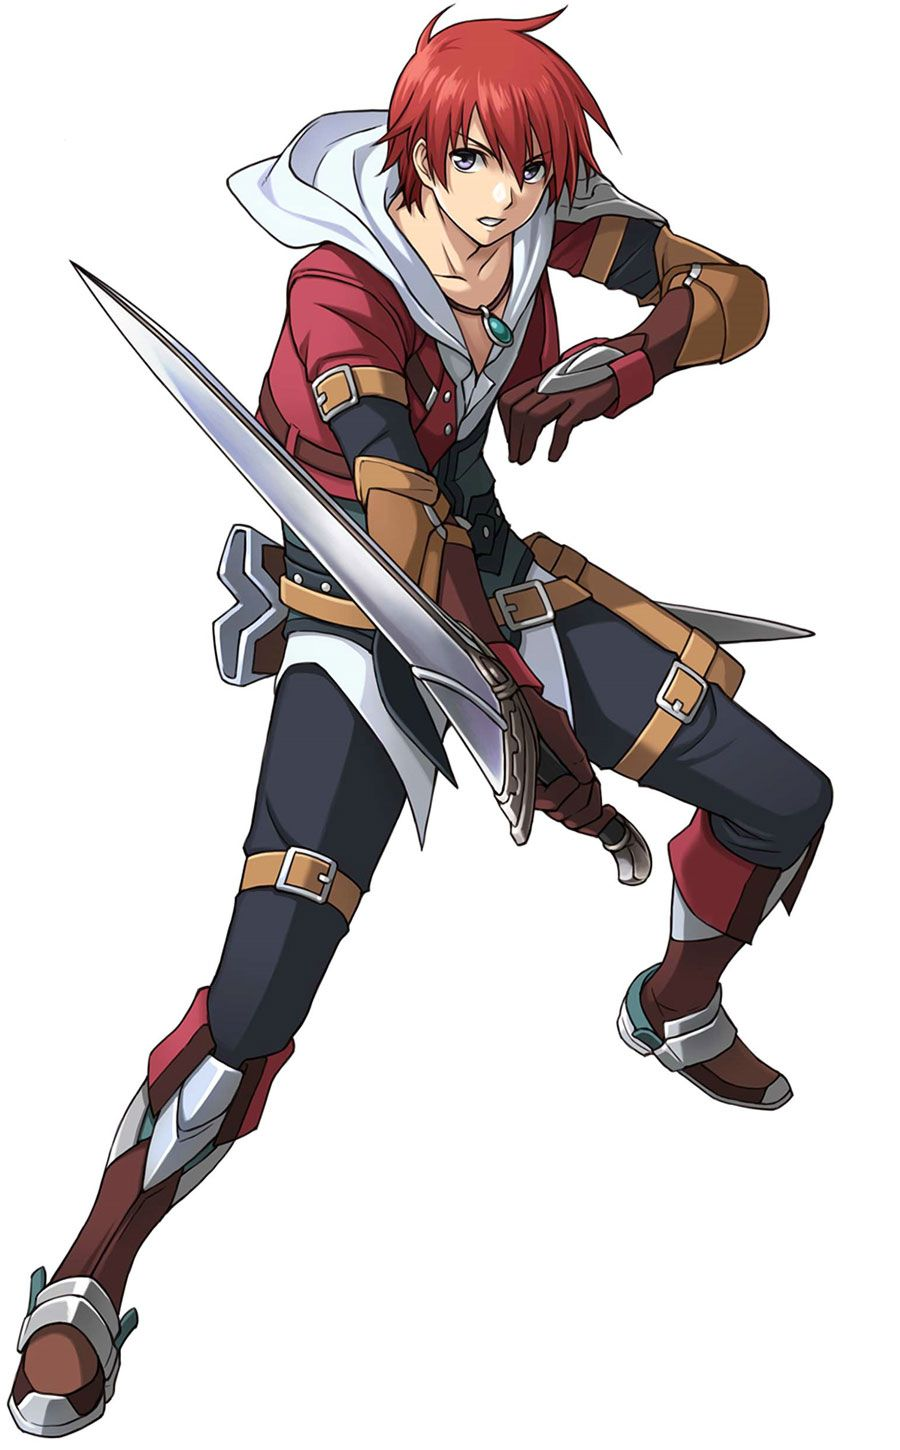 Adol Christin from Ys: Memories of Celceta